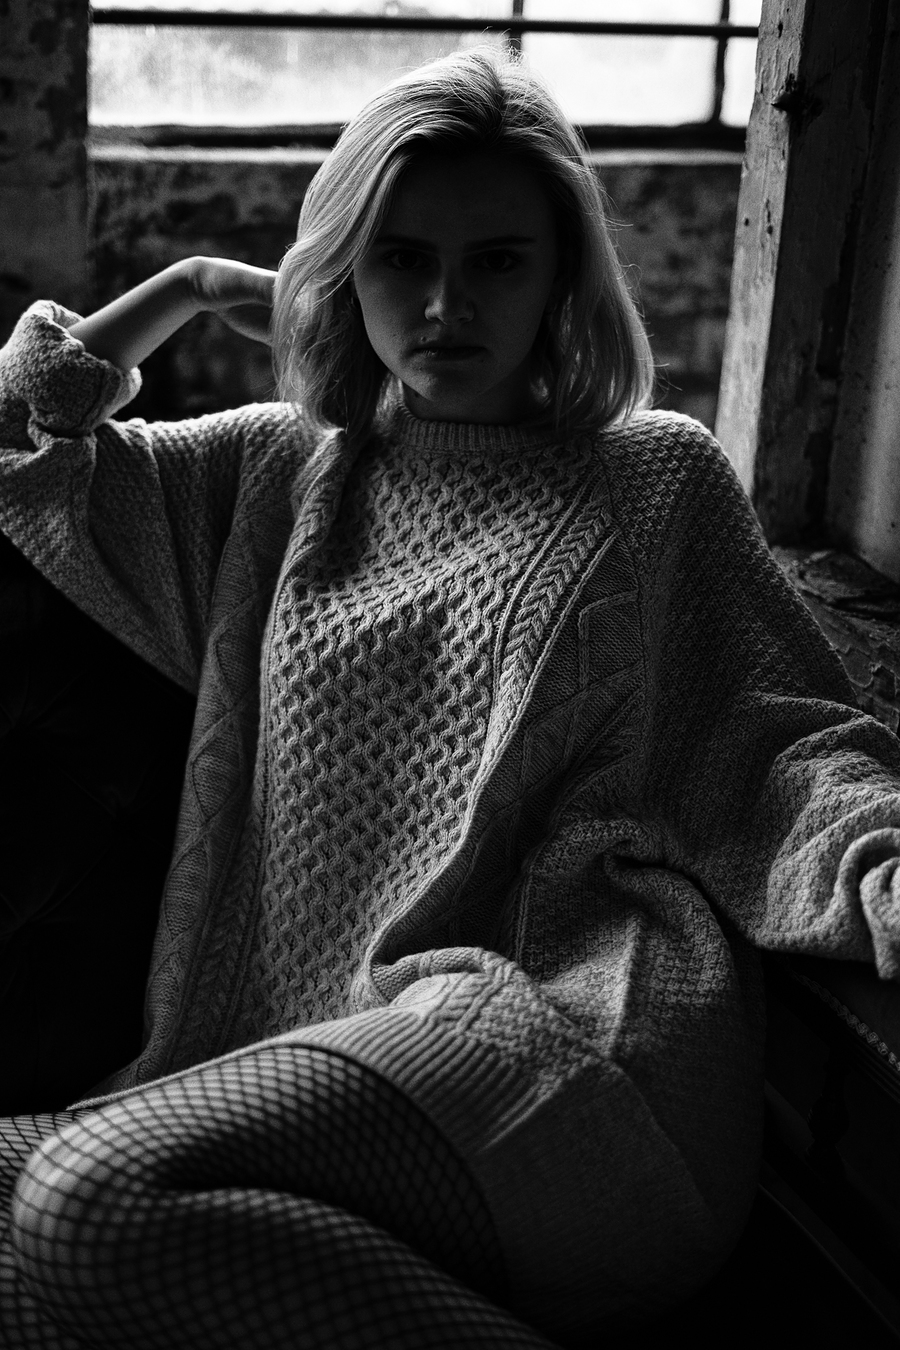 Moody B&W / Photography by Andrew Jones, Model HannahRose, Post processing by Andrew Jones / Uploaded 28th October 2019 @ 10:46 AM